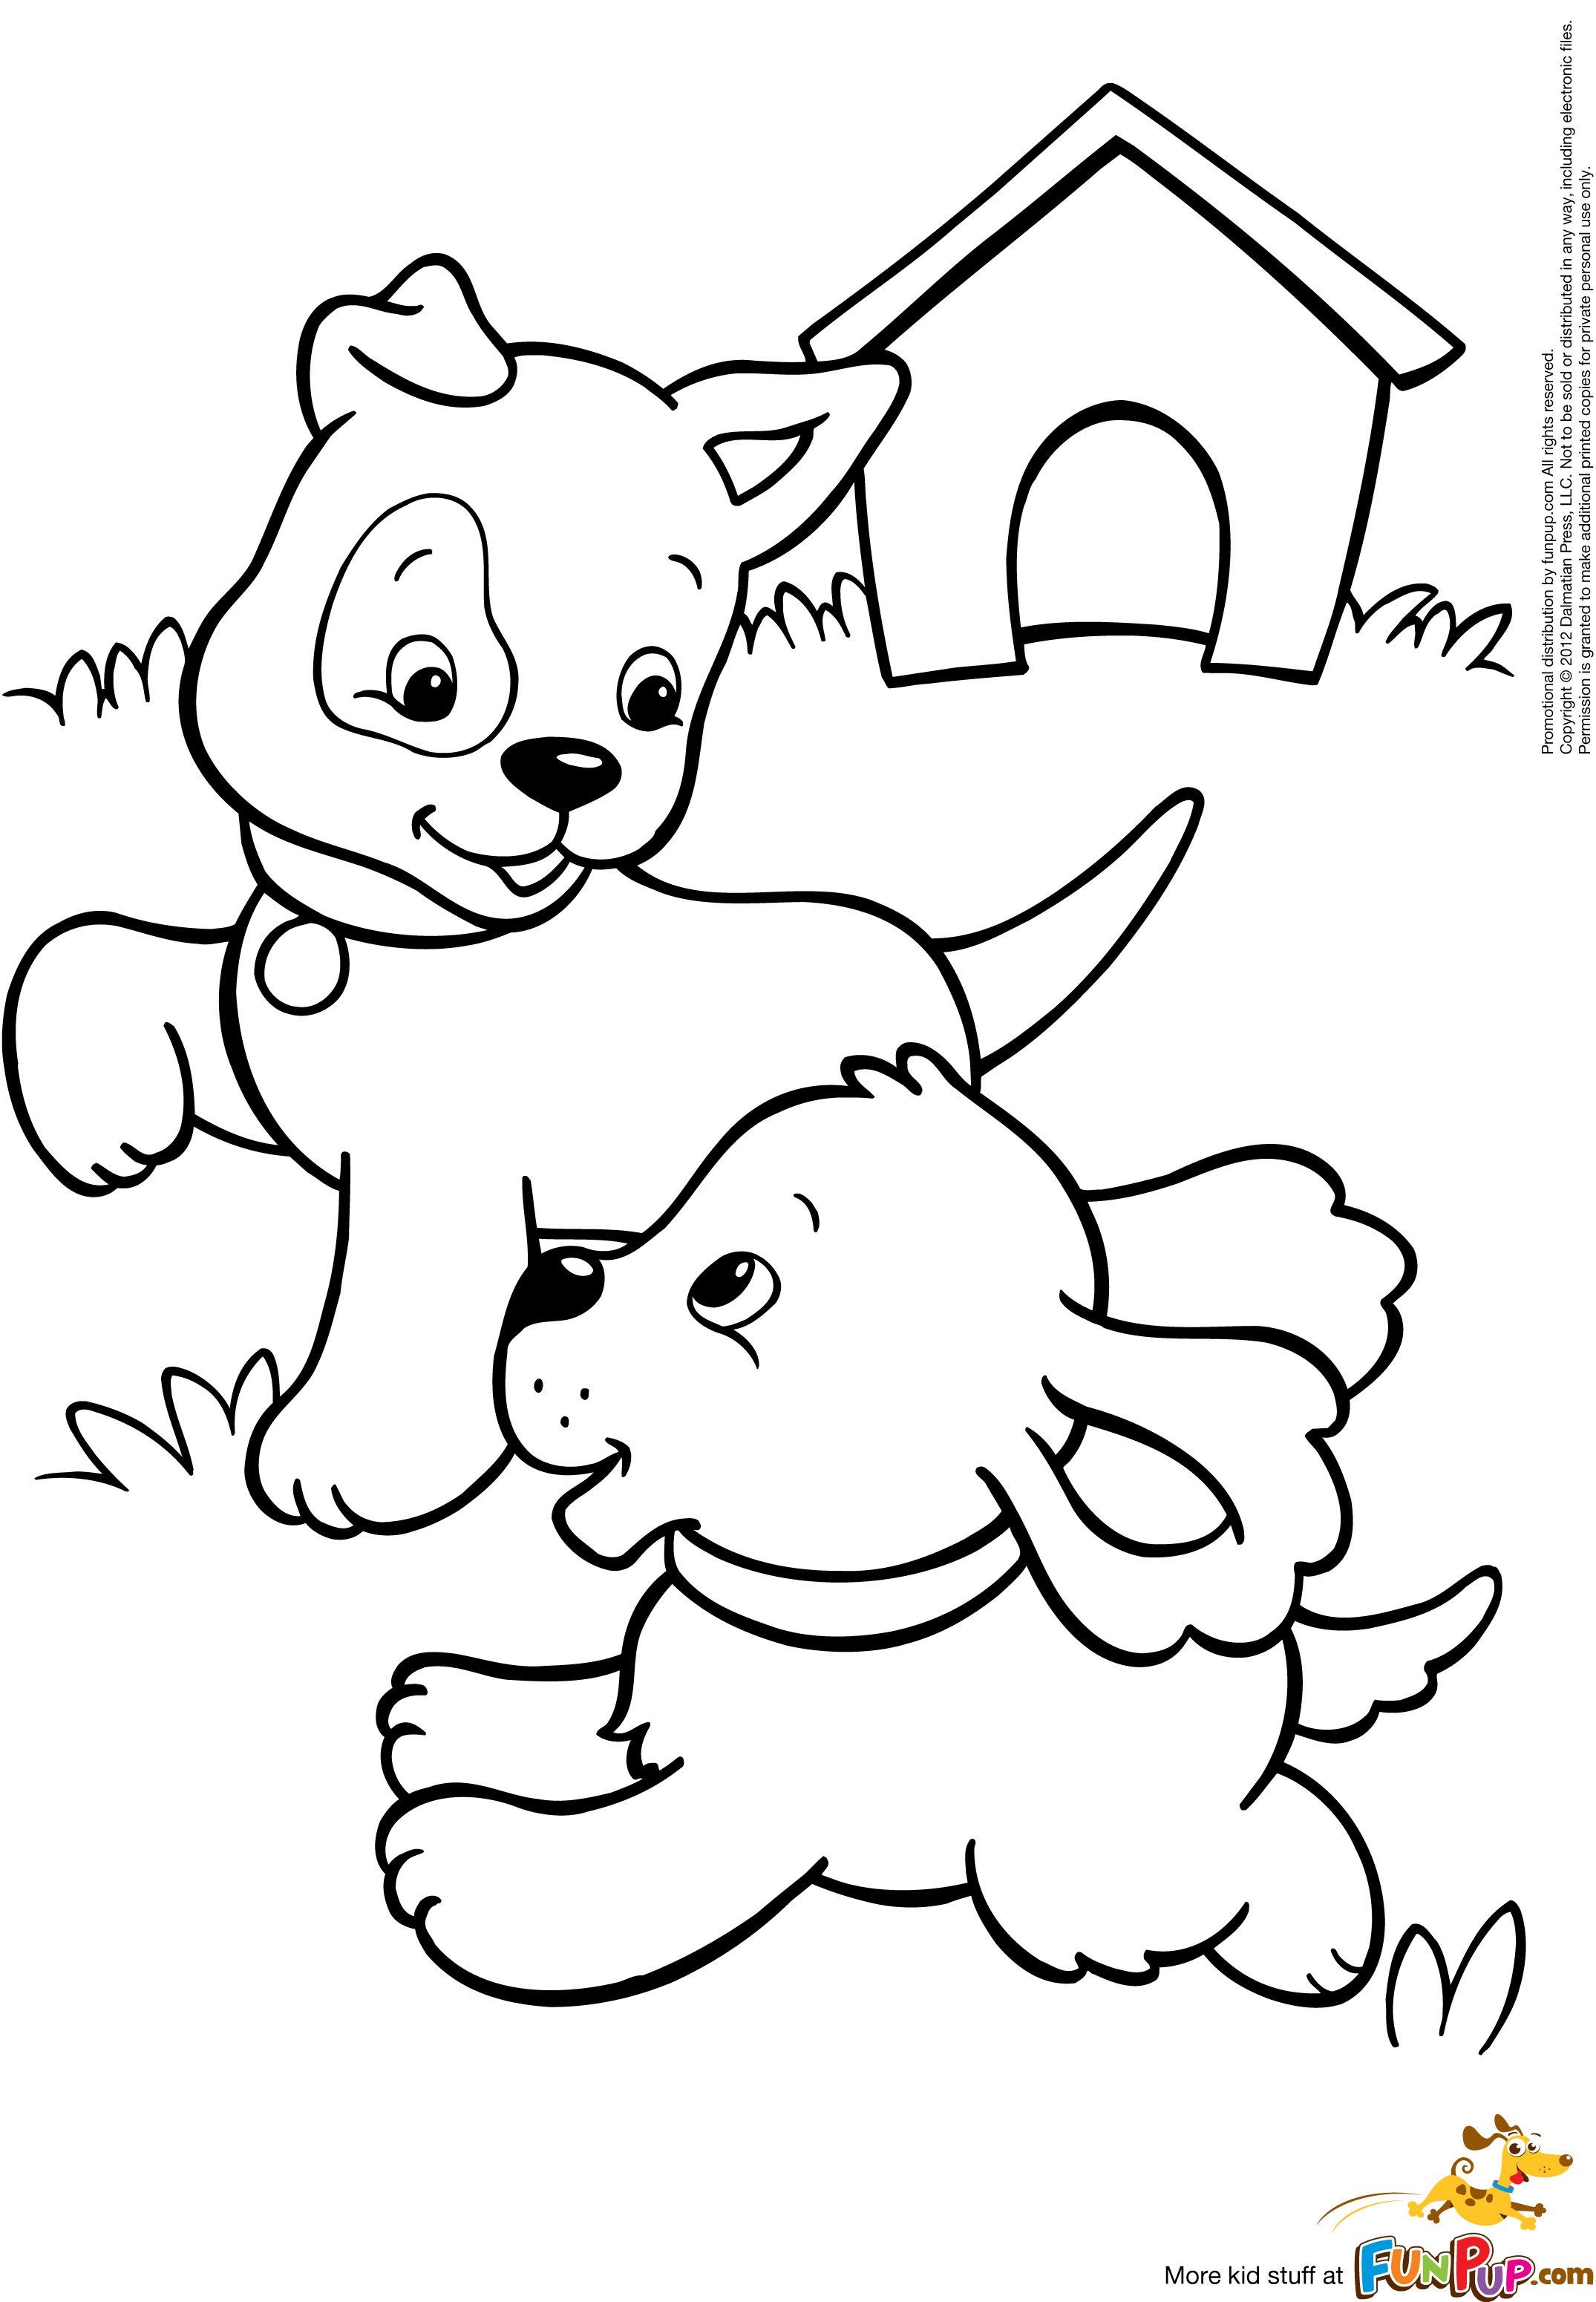 Peaceful image intended for puppy printable coloring pages